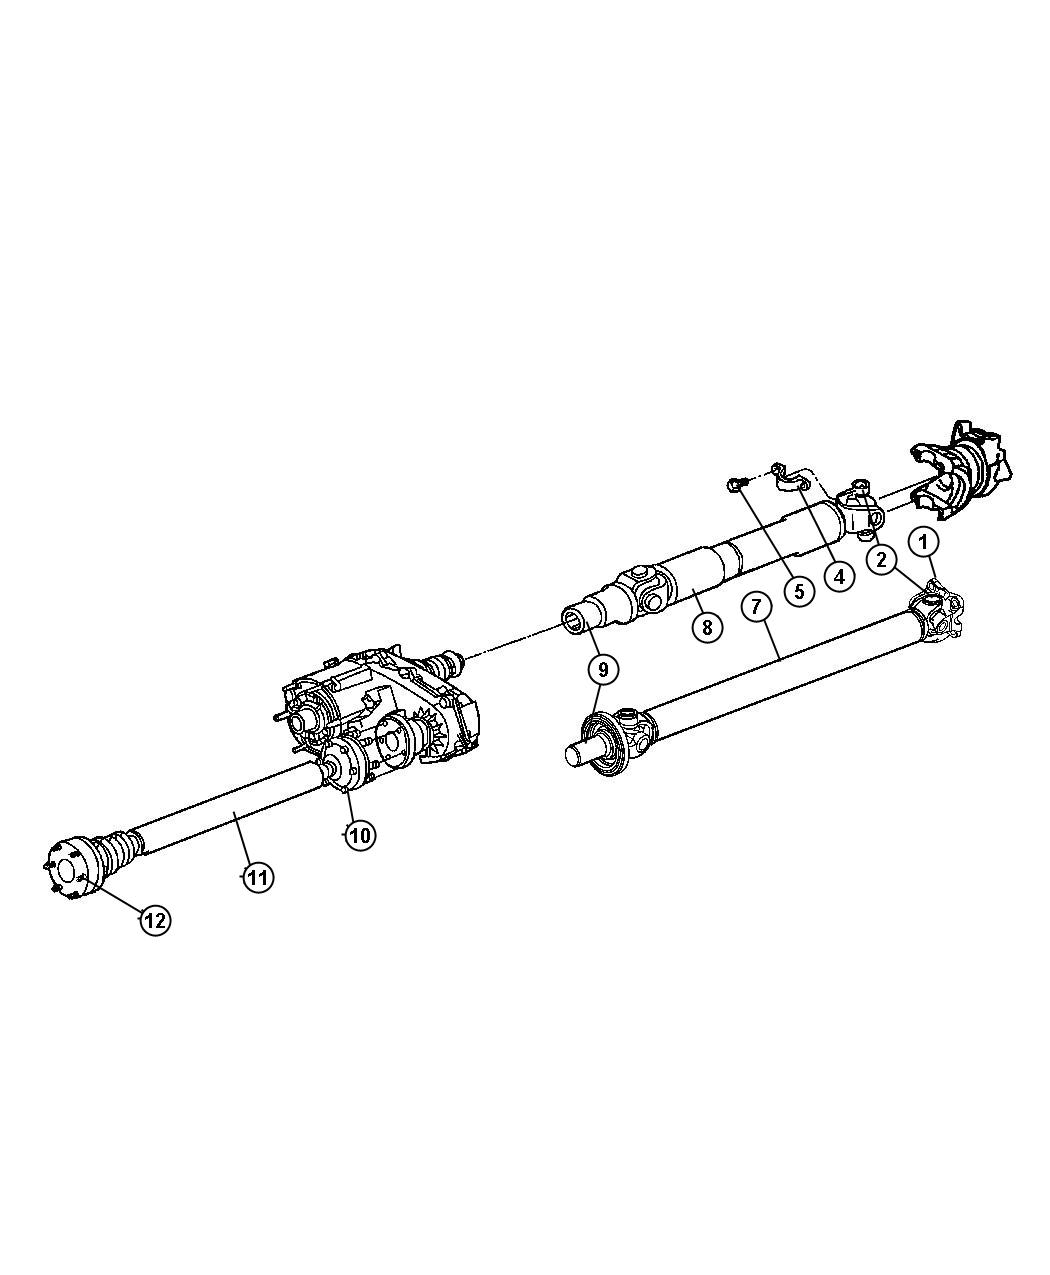 Jeep Liberty Used for: BOLT AND WASHER. Drive Shaft